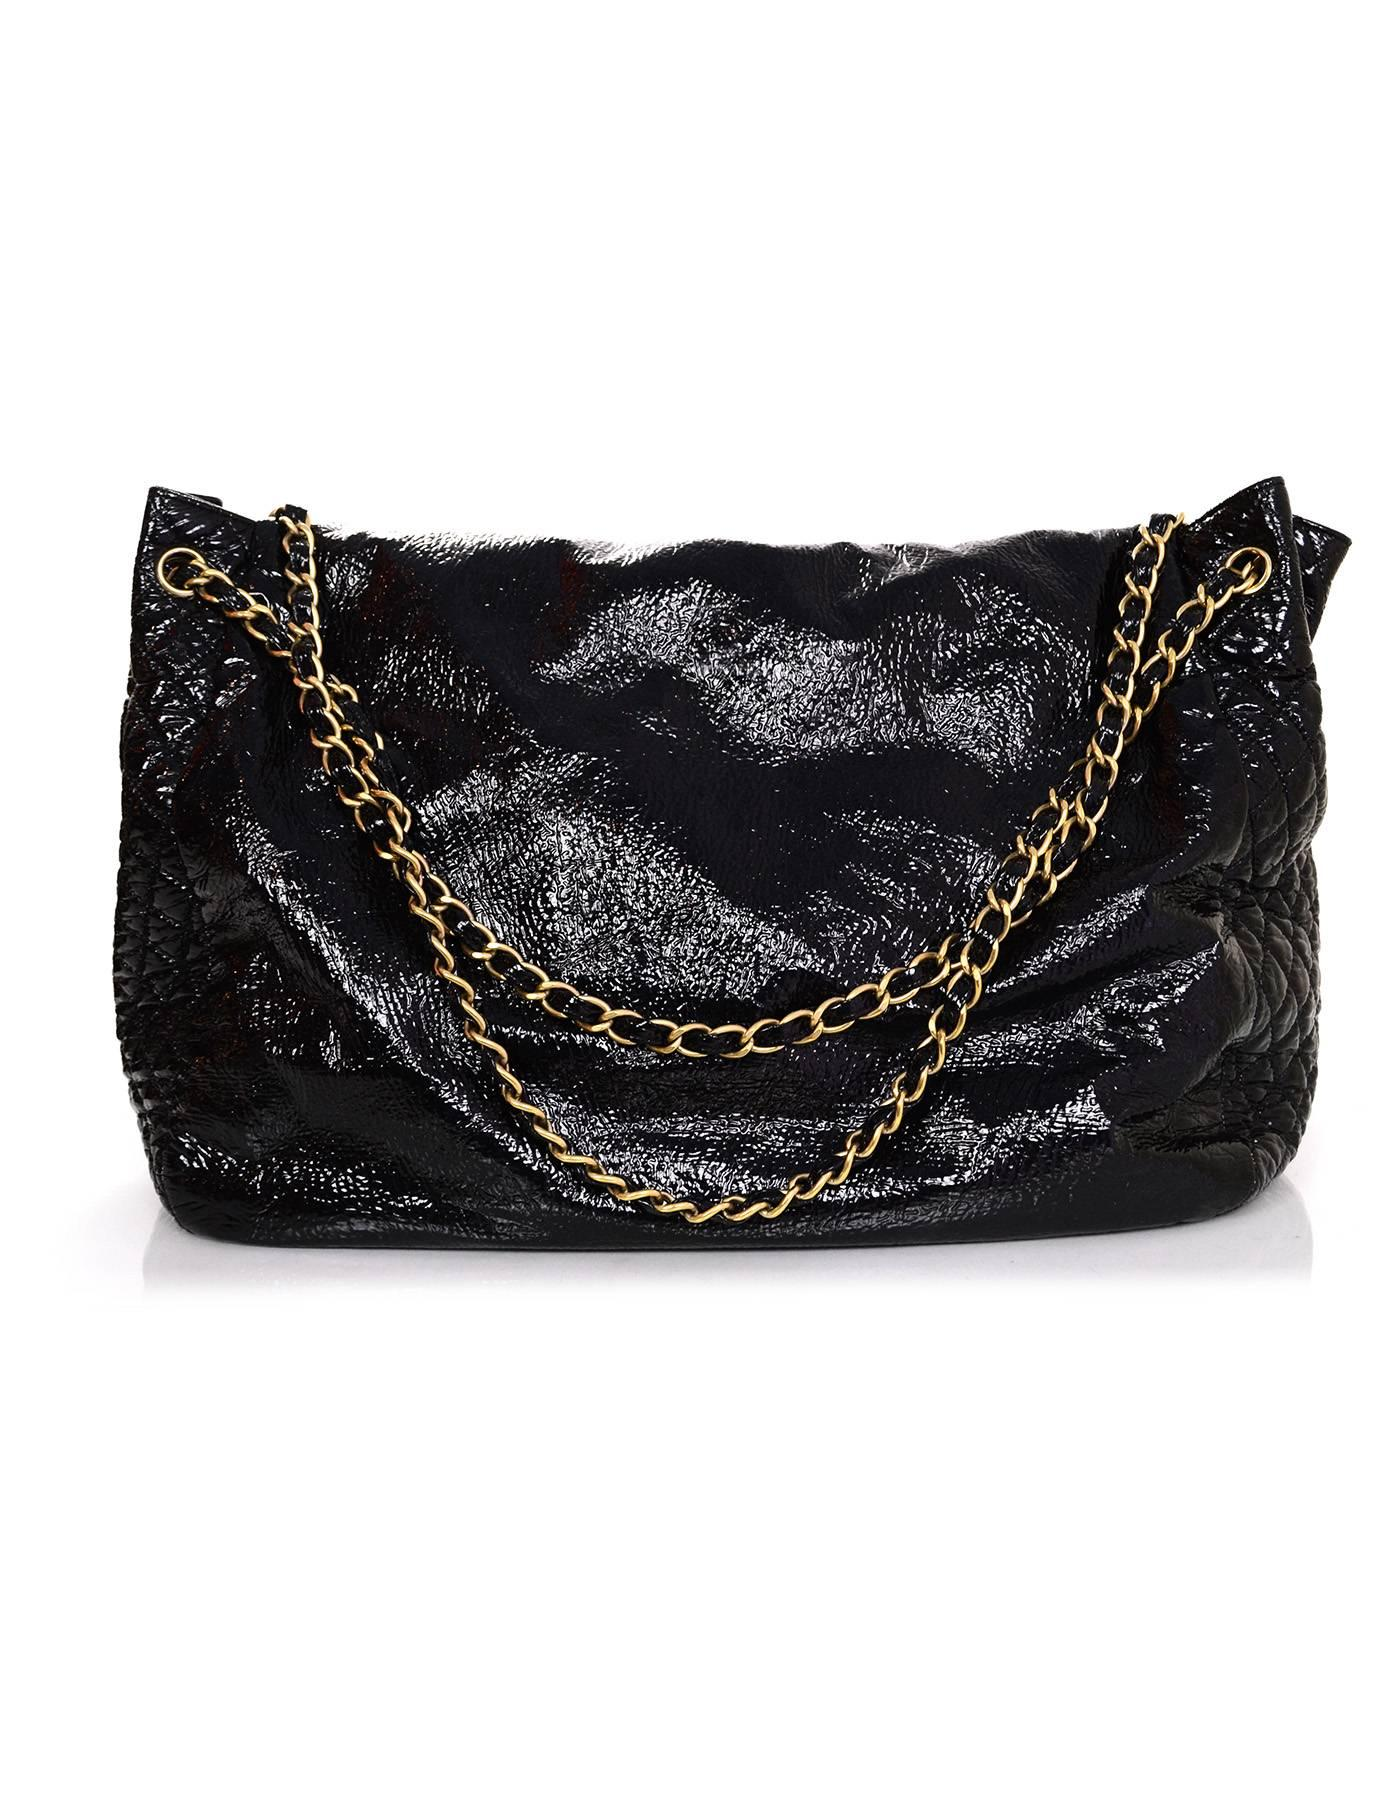 cbbe9965a1e1a1 Chanel Black Vinyl XL Rock and Chain Accordion Bag For Sale at 1stdibs